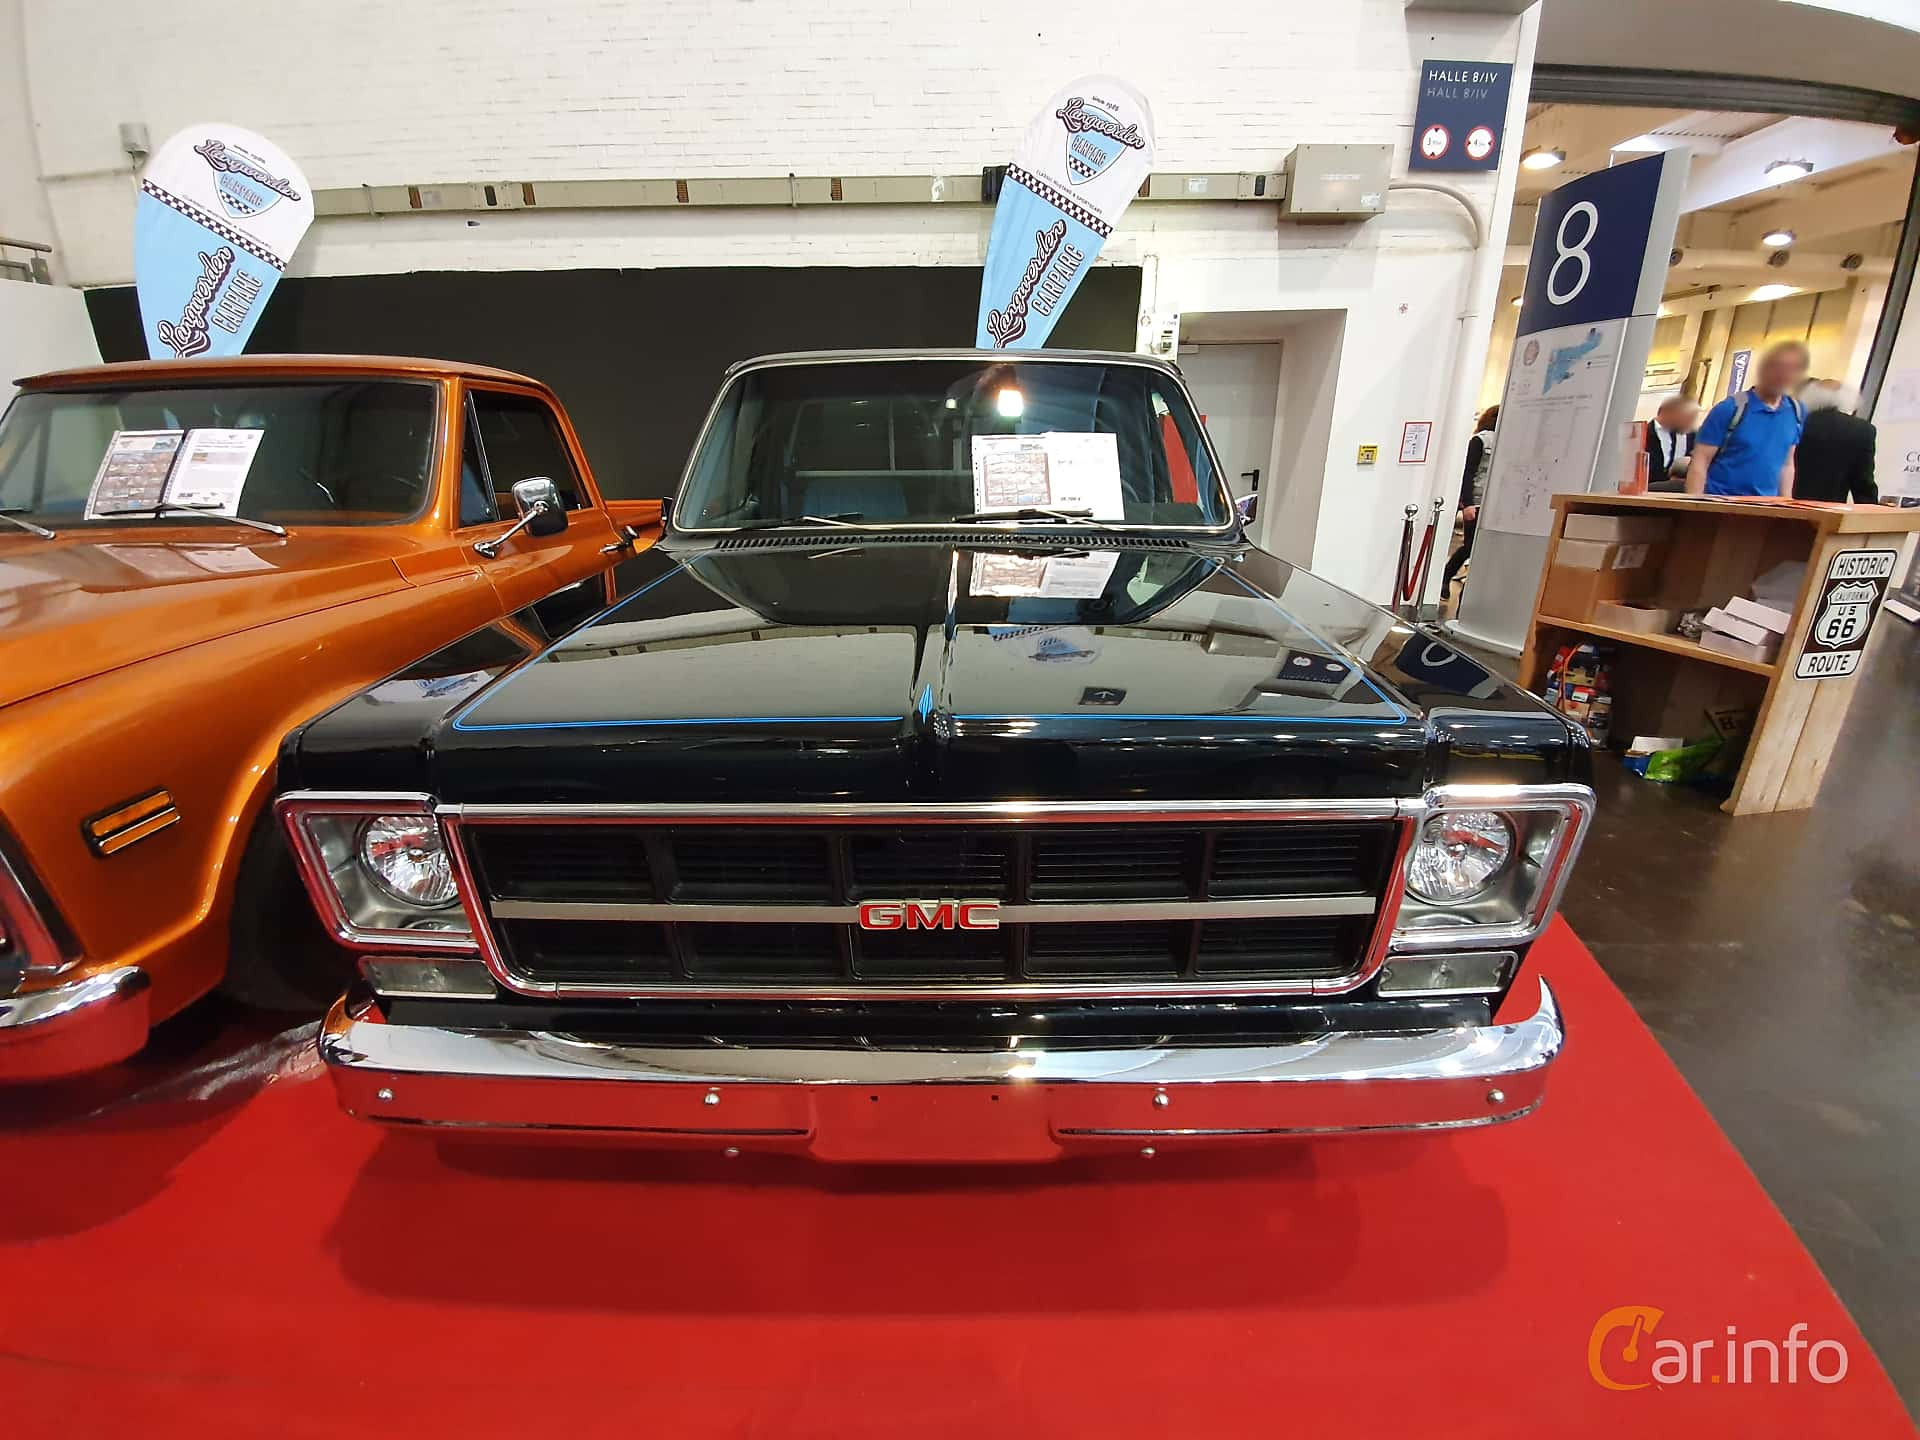 GMC C1500 Chassis 7.4 V8 Hydra-Matic, 248hp, 1977 at Techno Classica Essen 2019